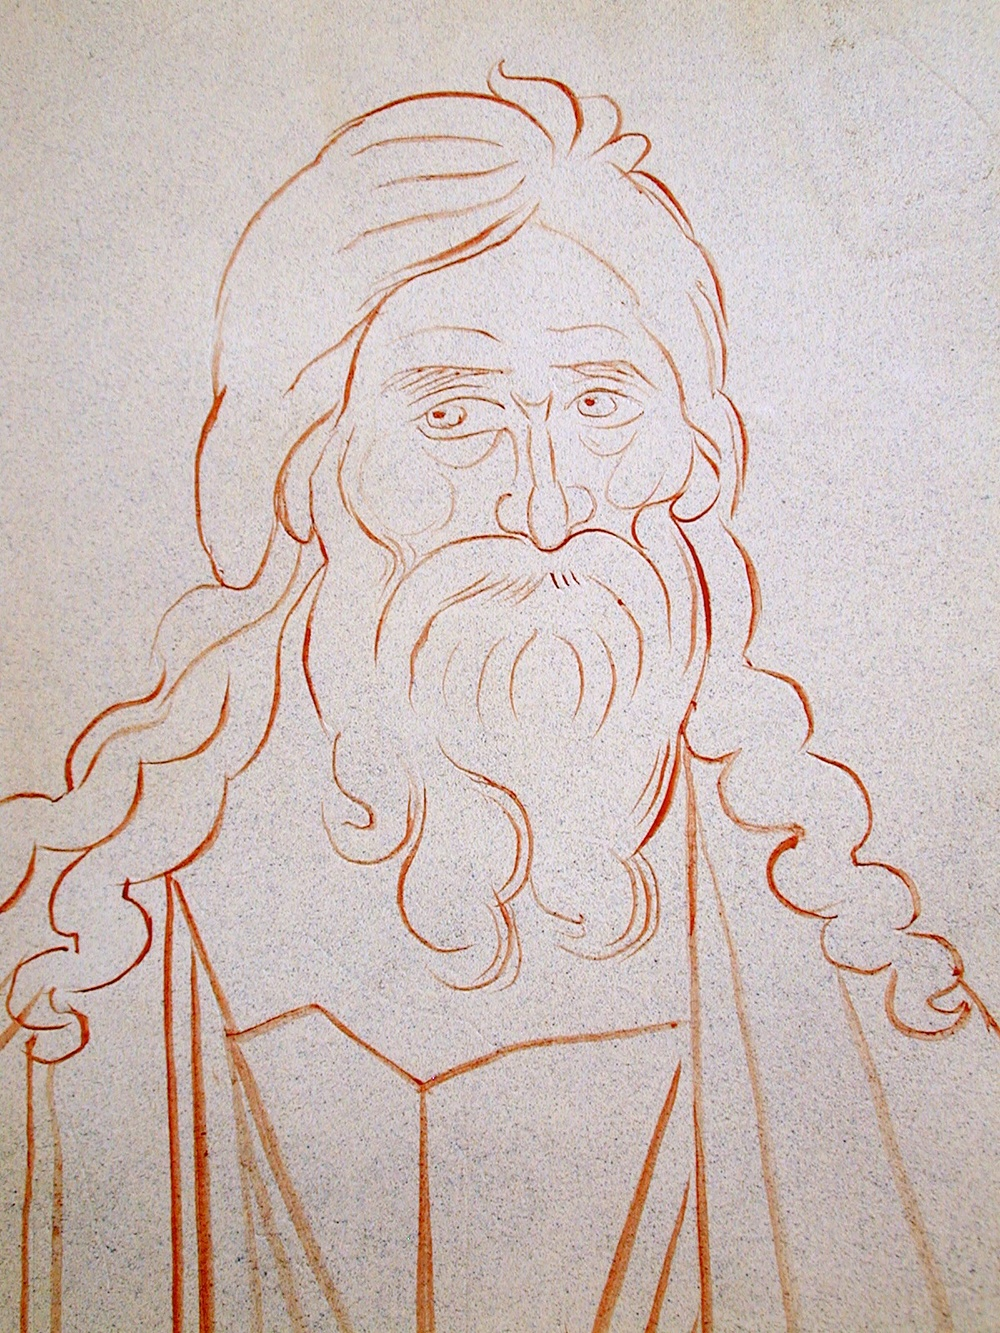 Fig 5. The Prophet Isaiah: initial drawing on the damp plaster.